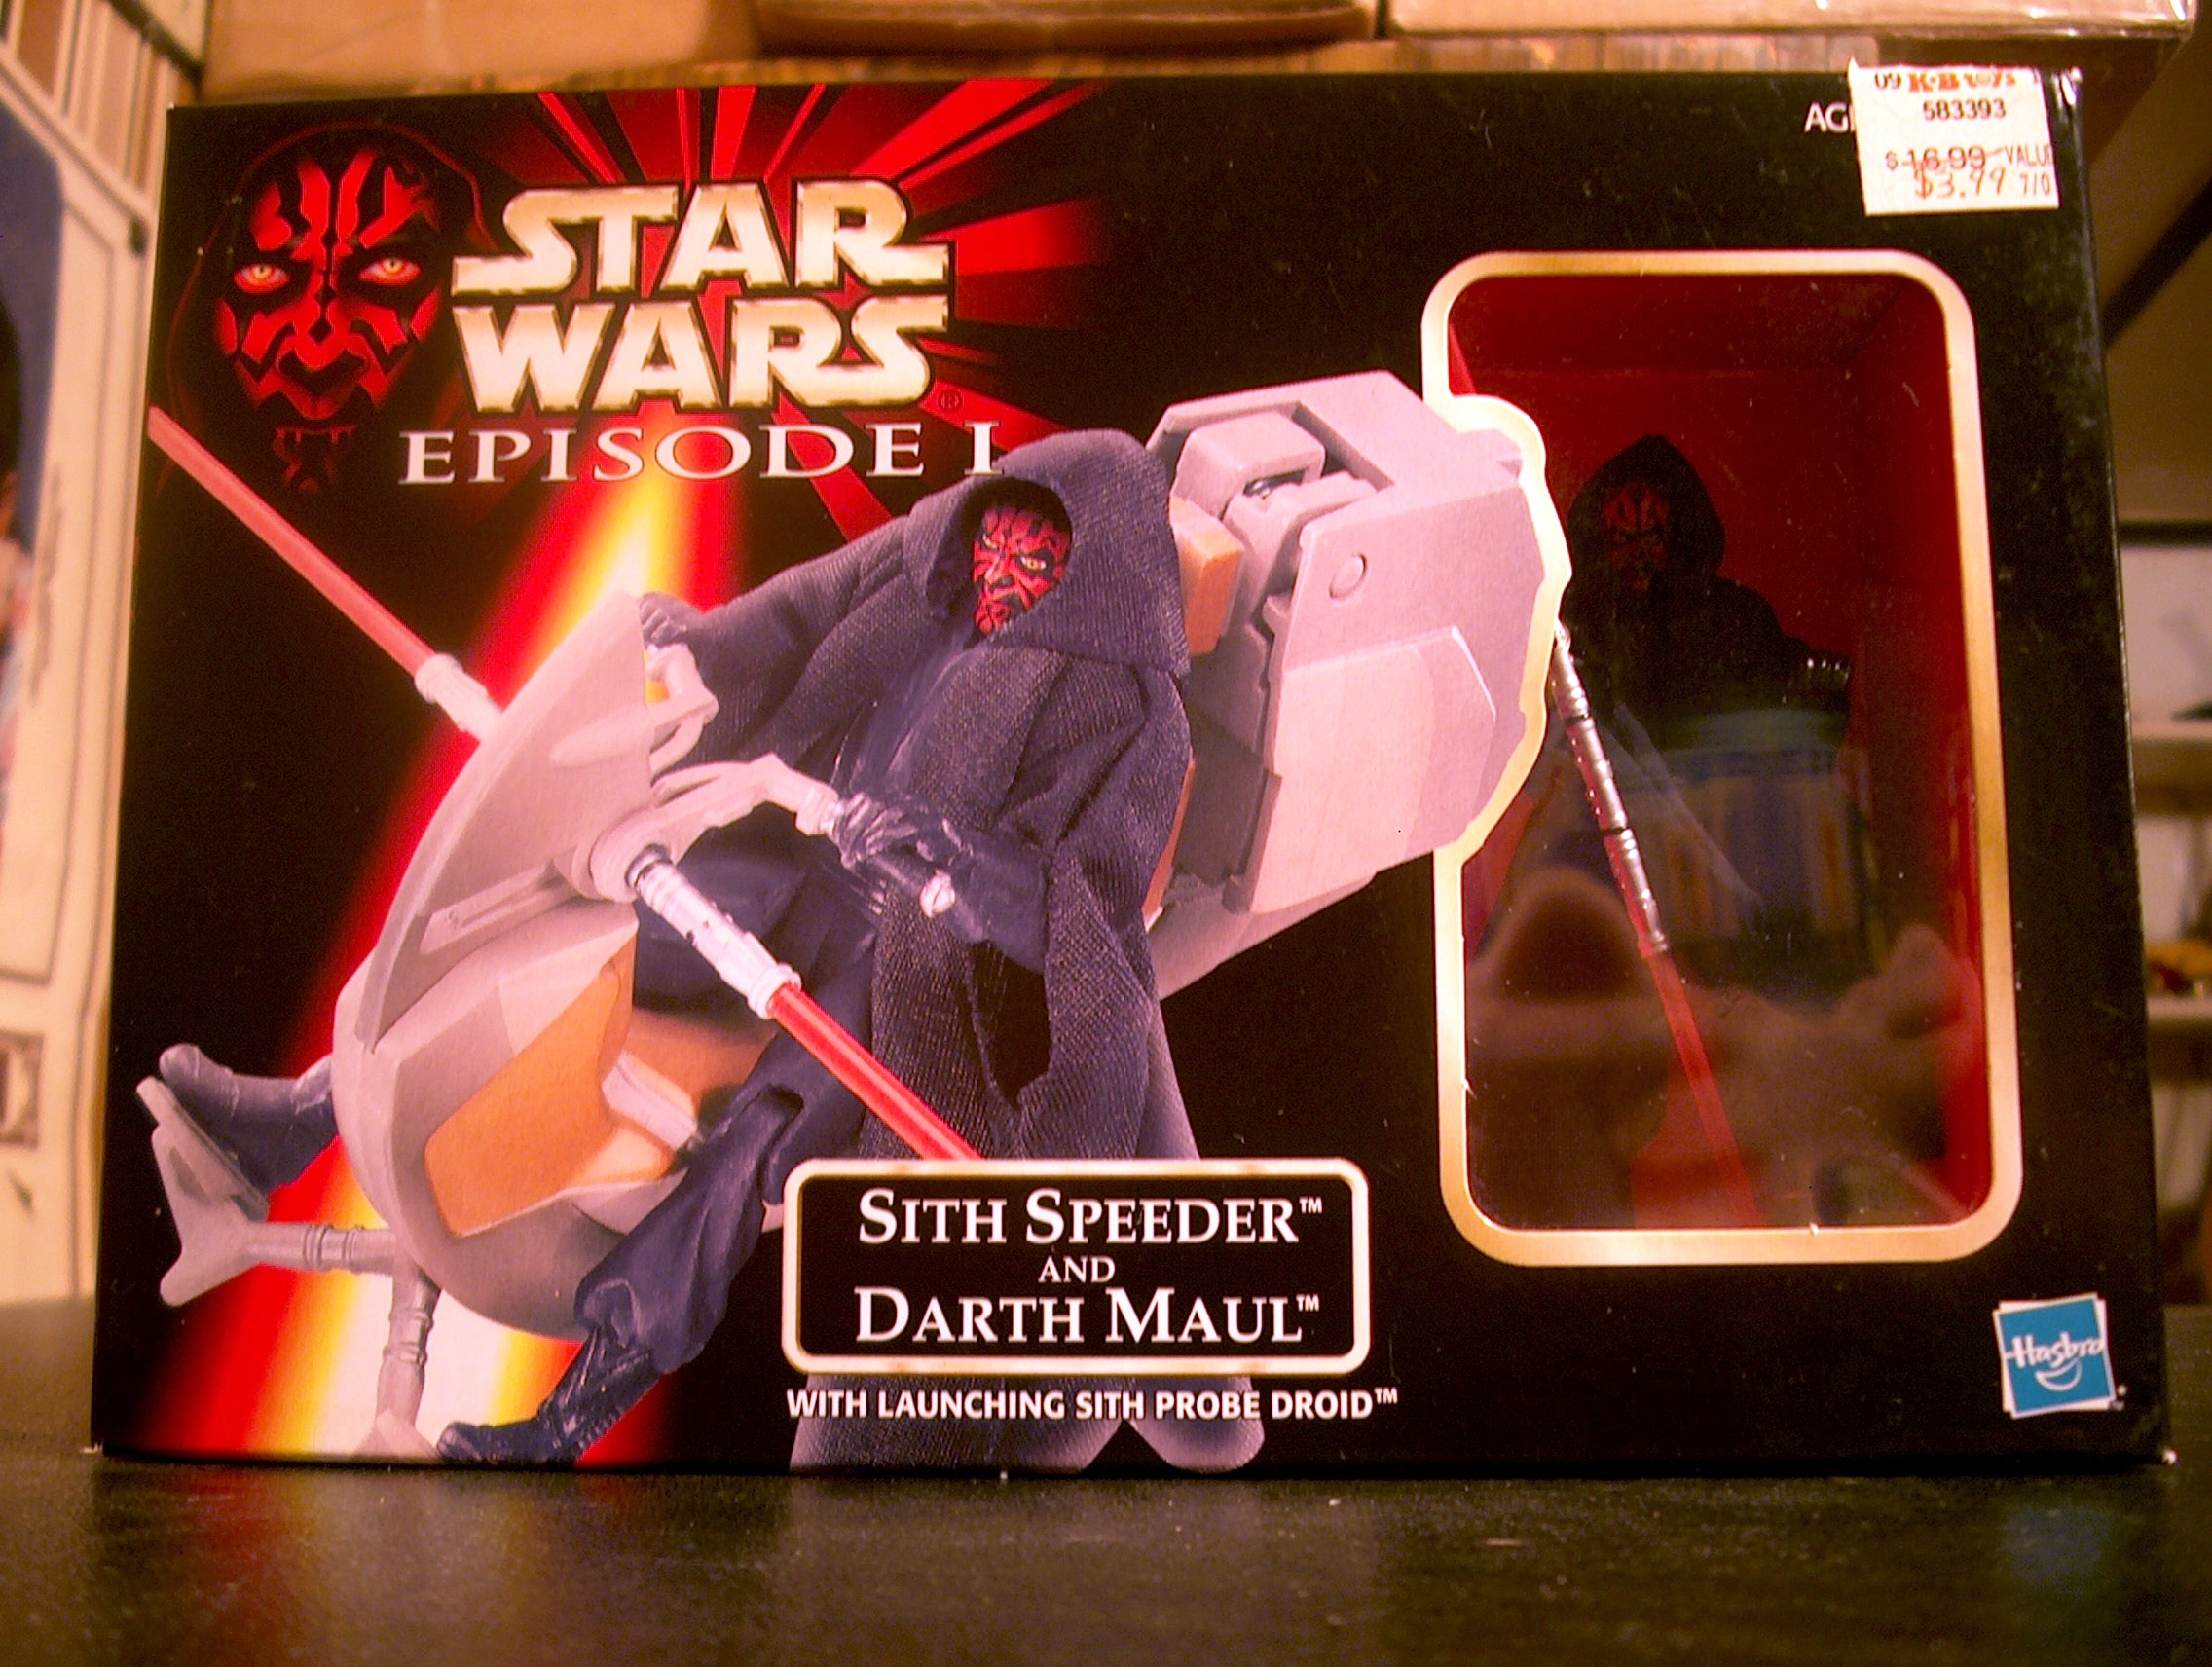 Sith Speeder and Darth Maul with Launching Sith Probe Droid